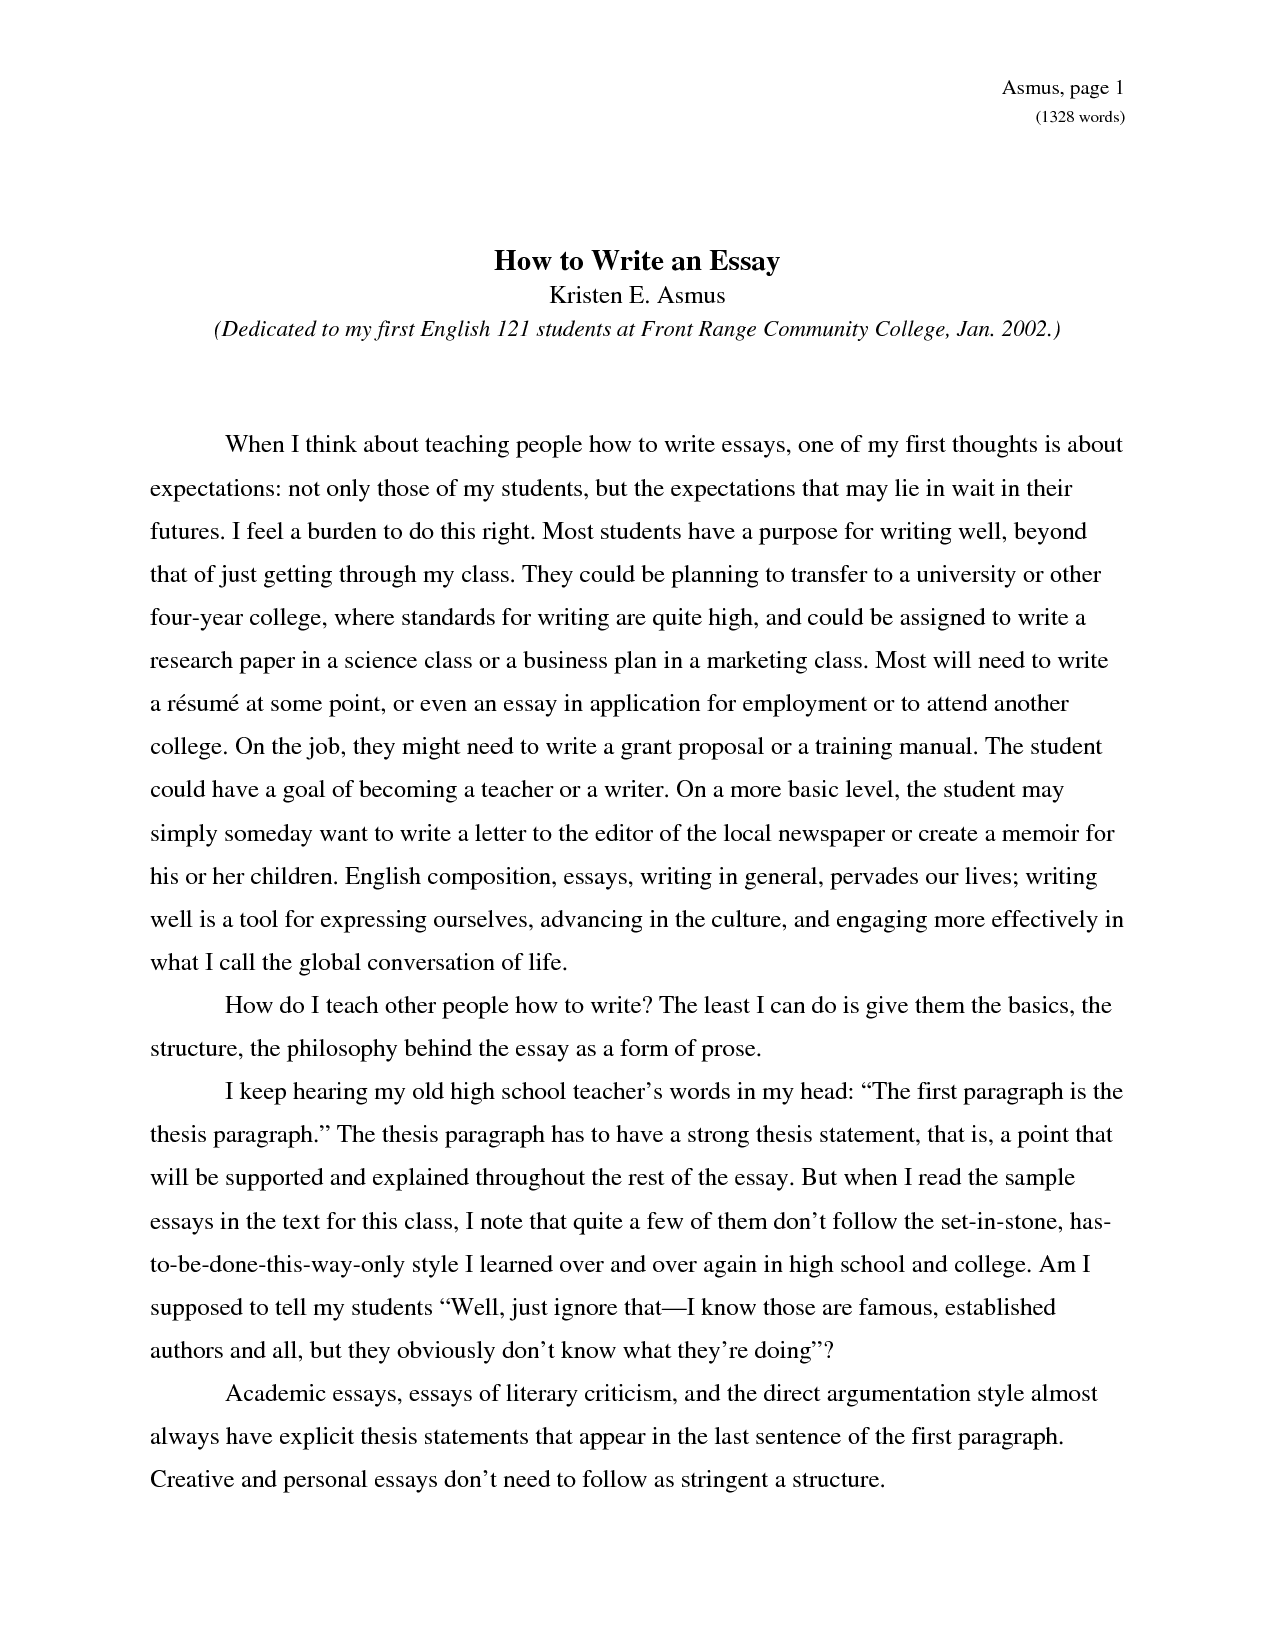 an essay writing